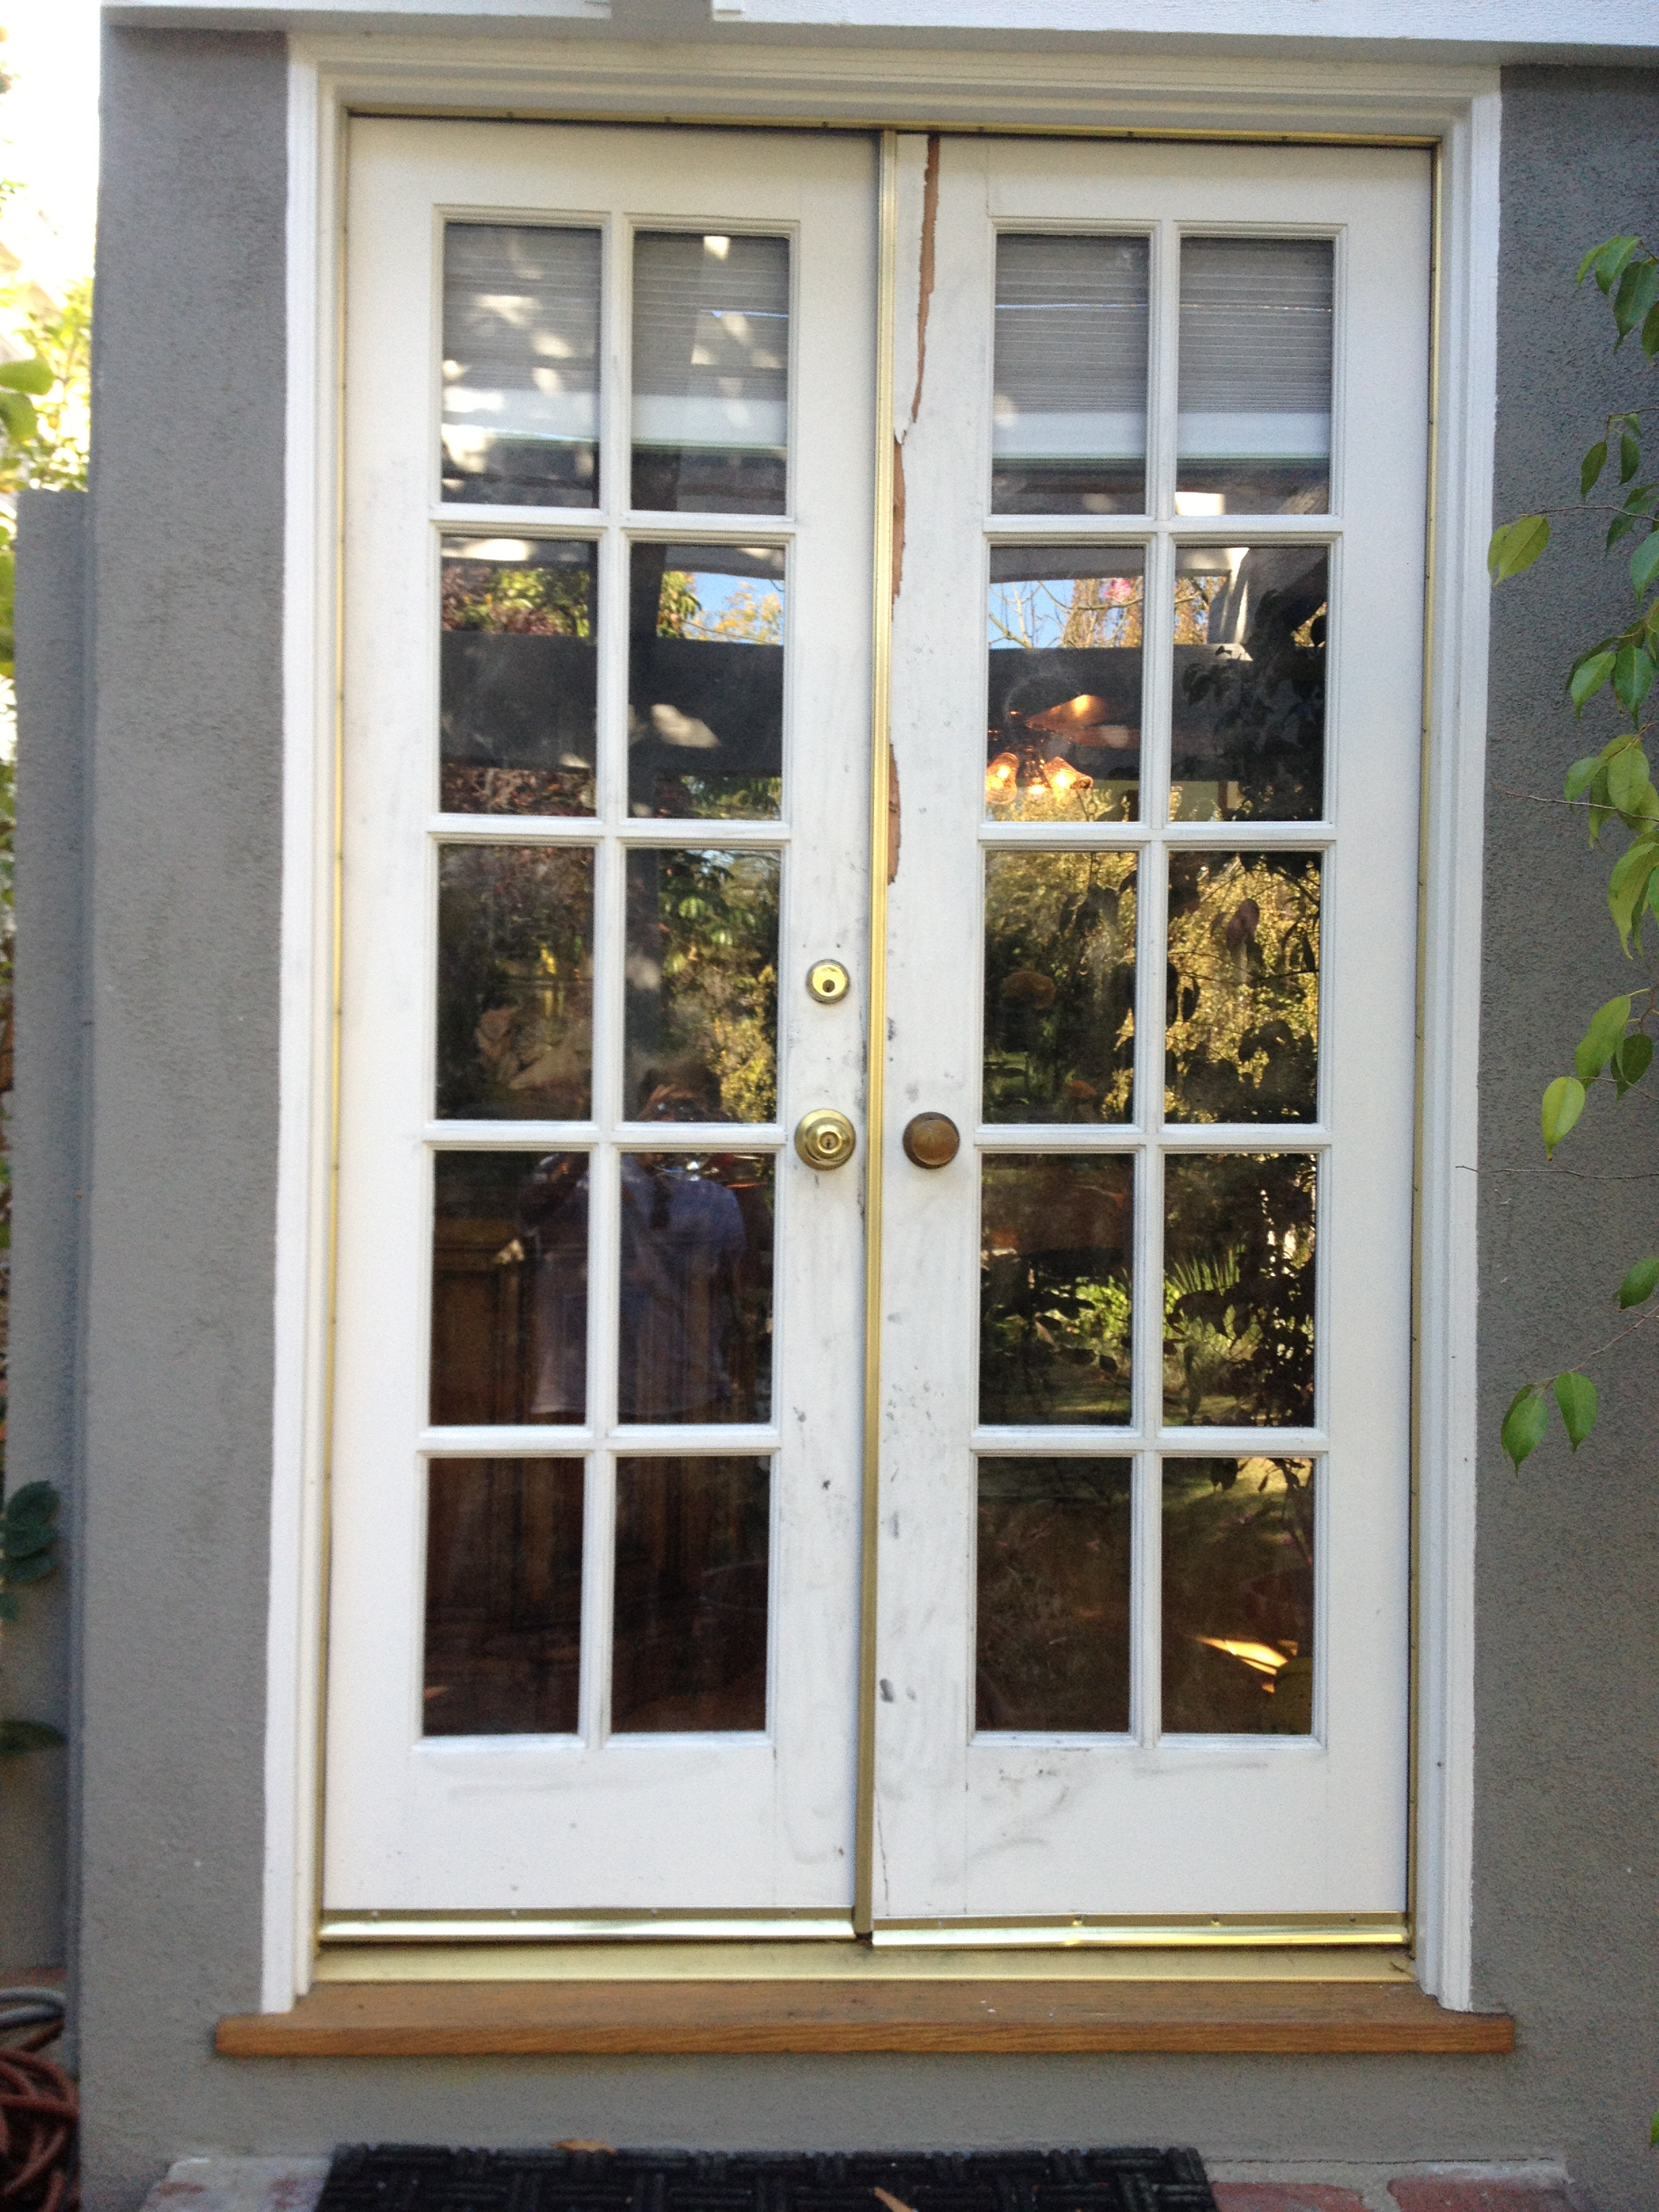 3264 #877844 Double French Doors Exterior Interior & Exterior Doors save image Cost Of Exterior Doors 39672448